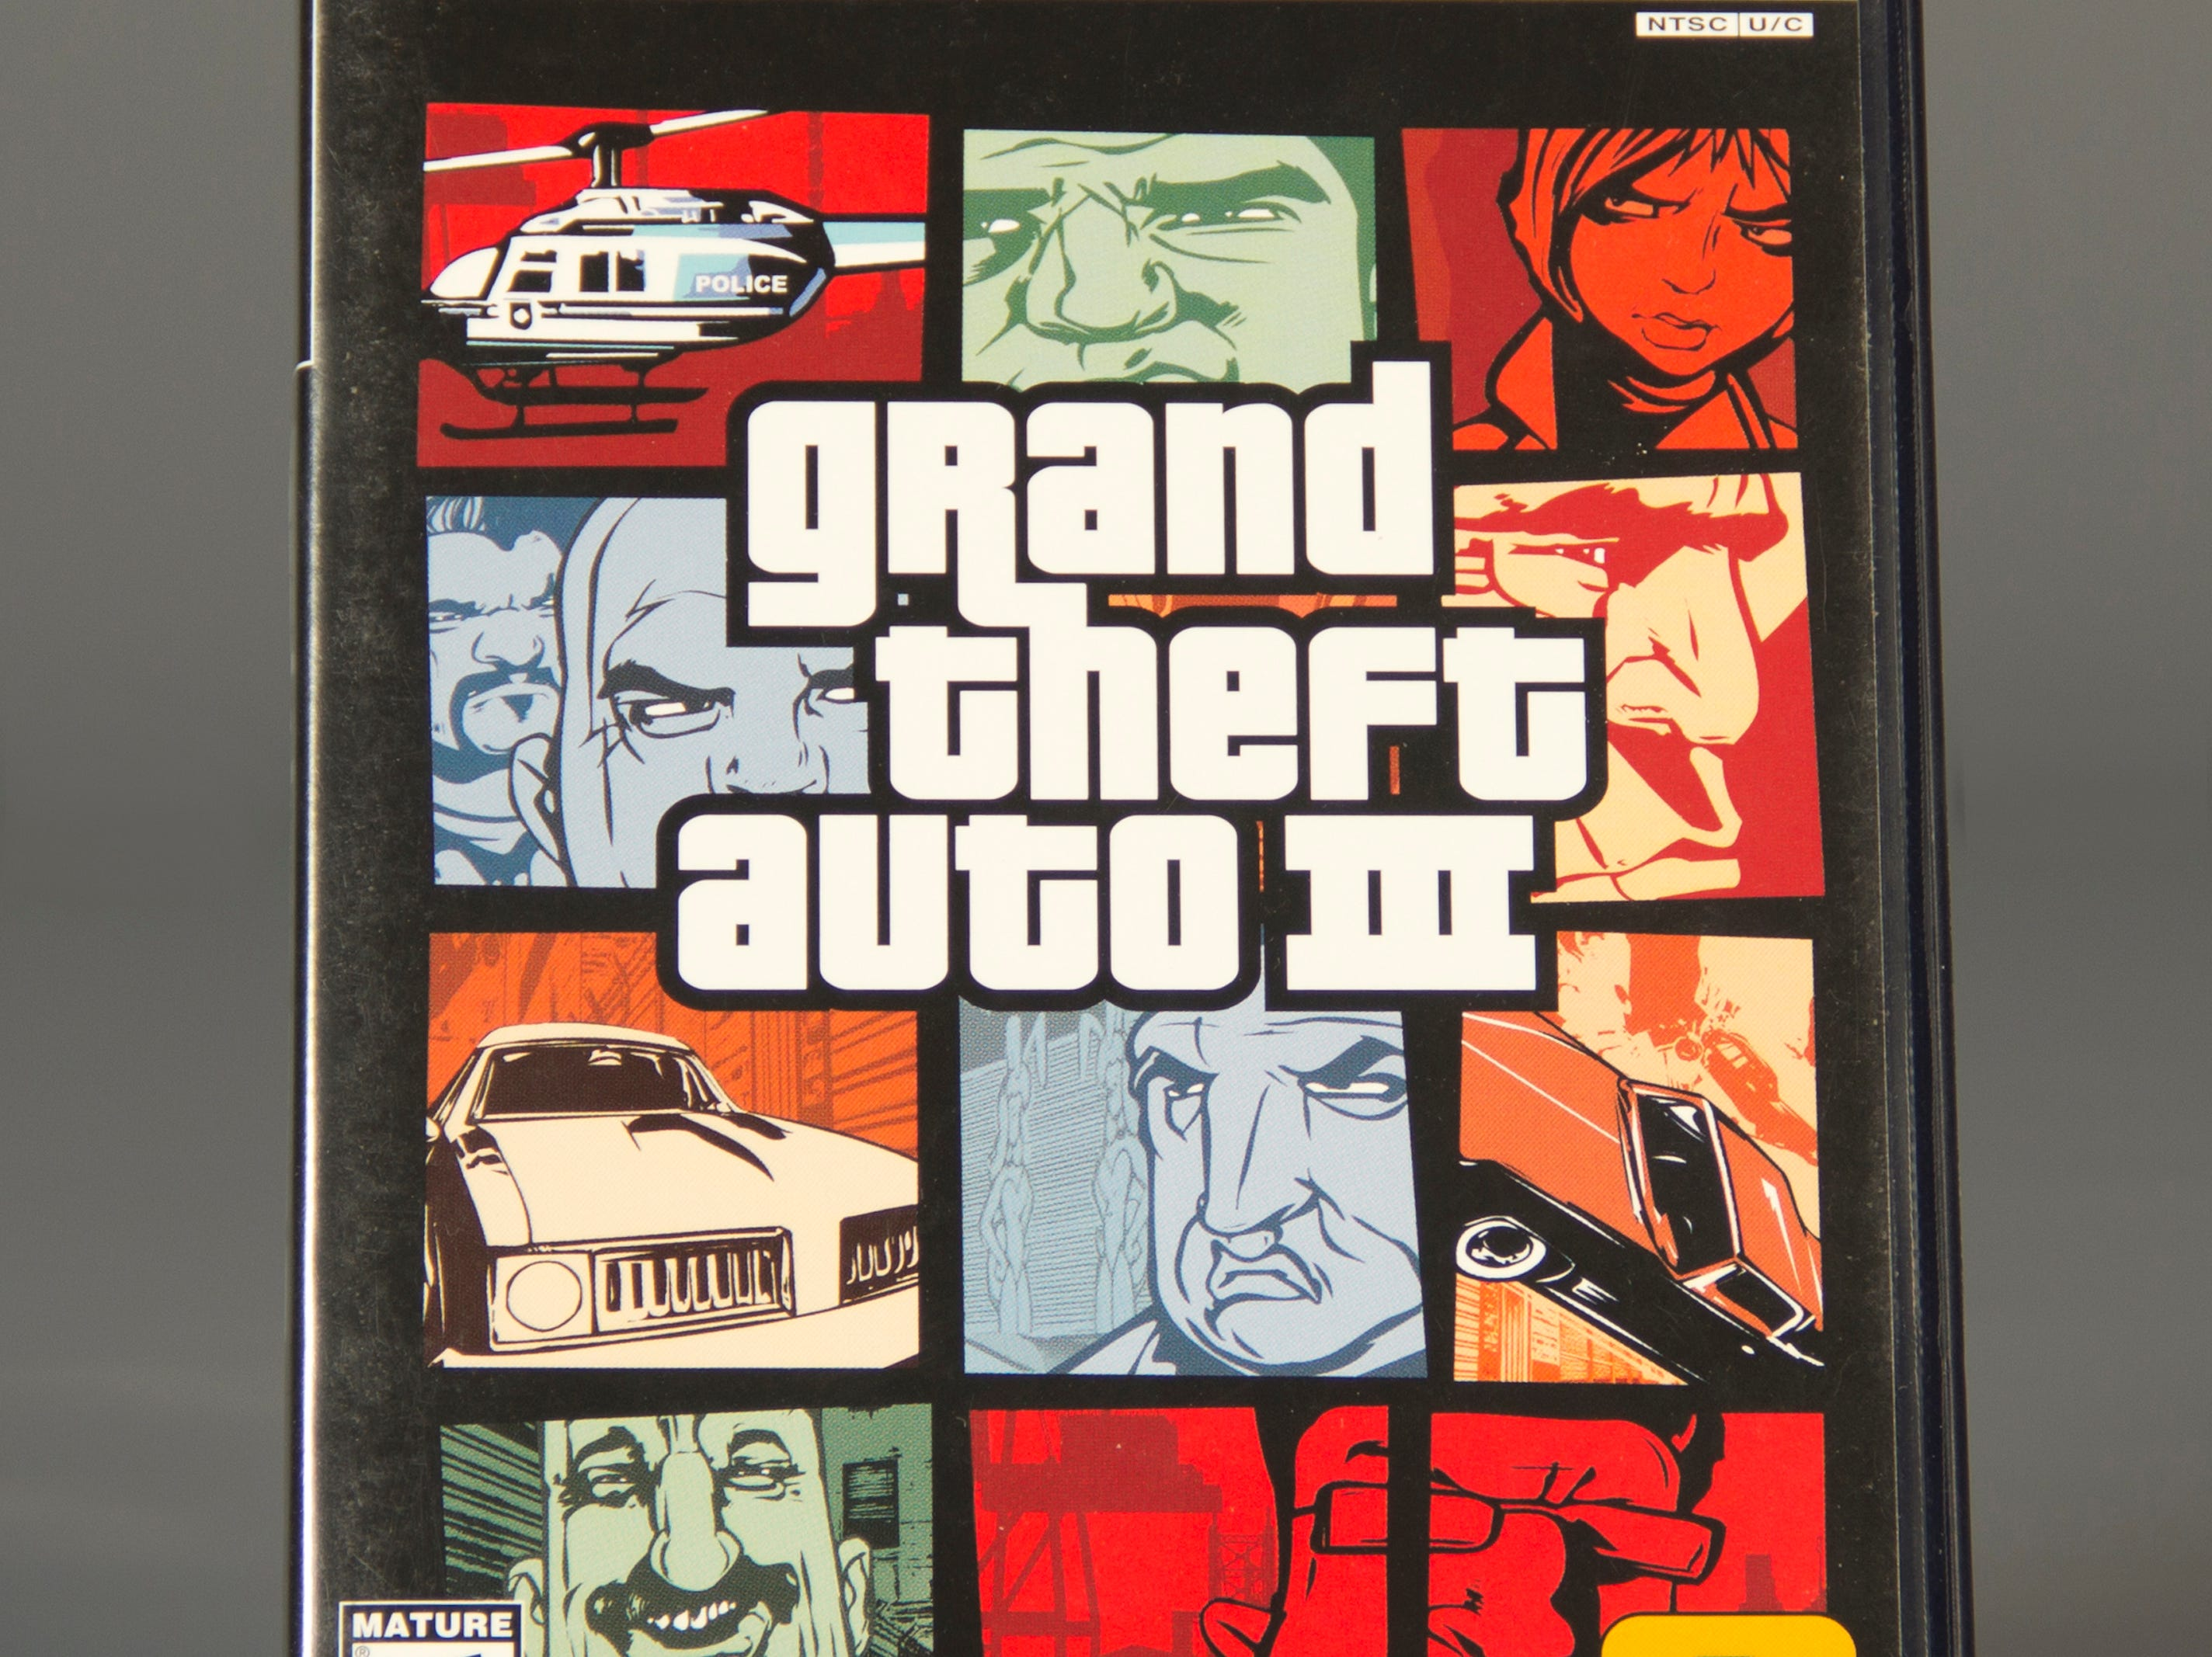 Grand Theft Auto III was inducted into the World Video Game Hall of Fame at The Strong National Museum of Play in Rochester, New York in 2016.